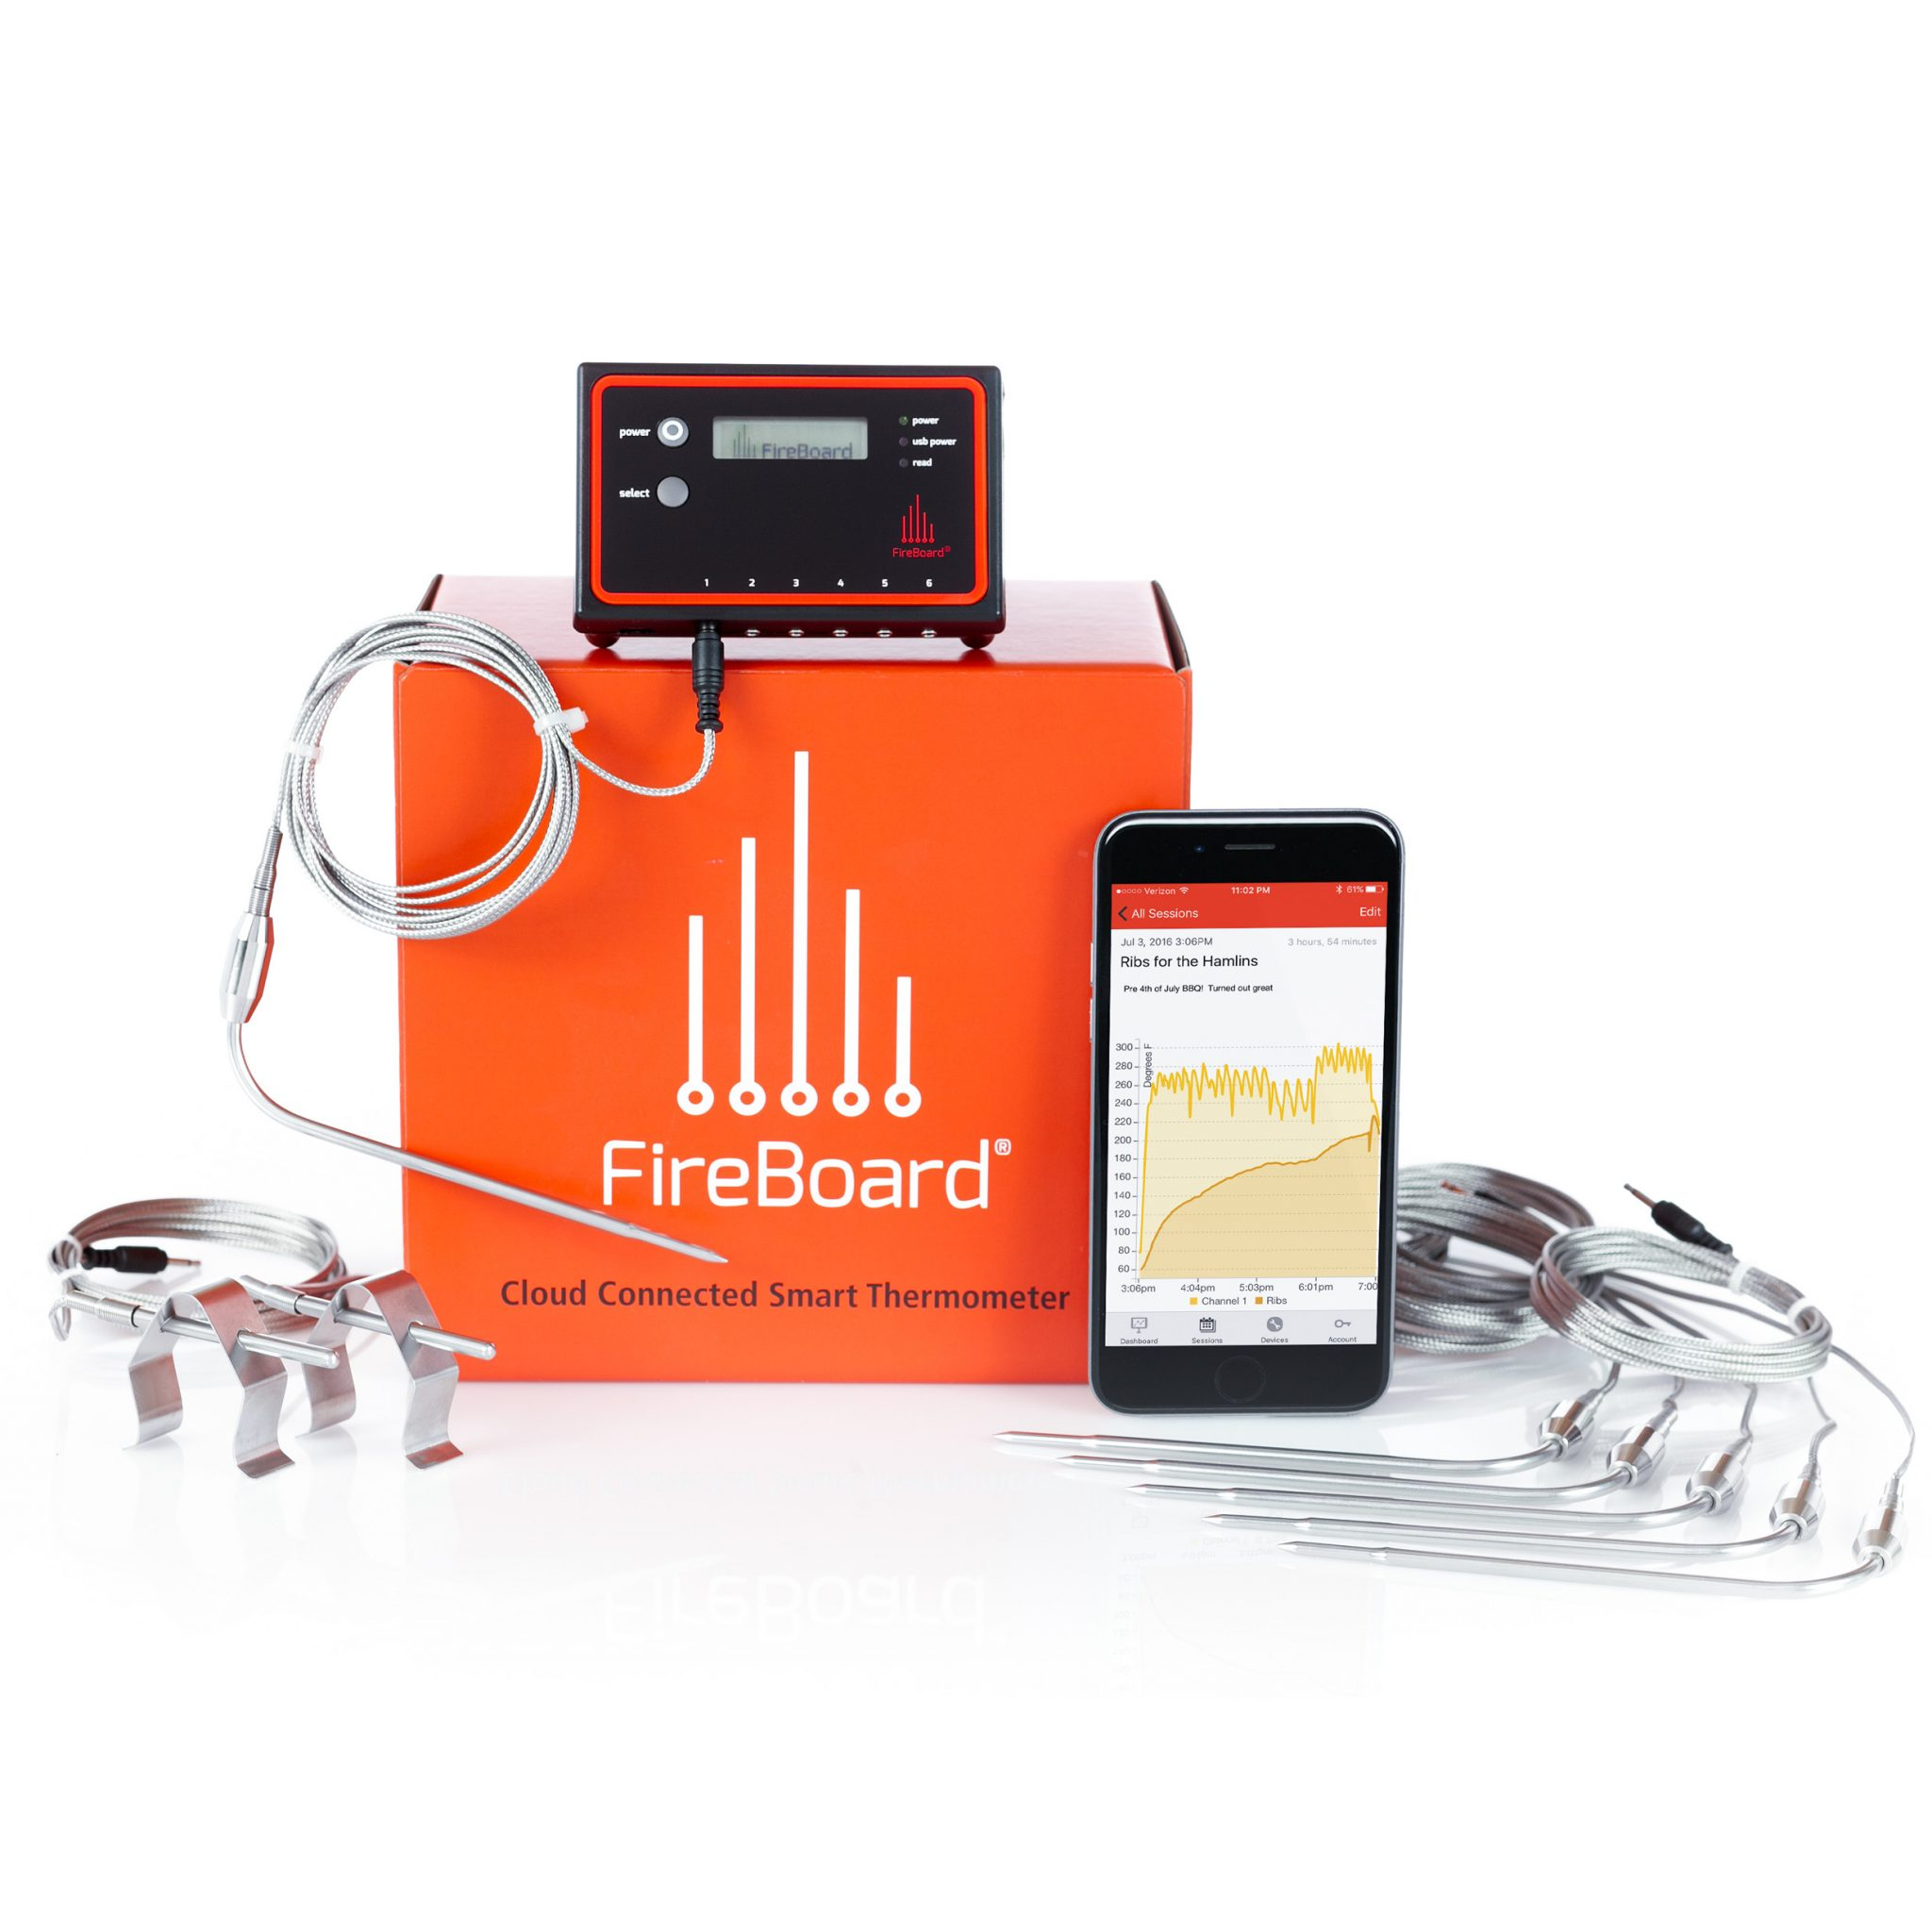 Fireboard Thermometer Extreme Bbq Edition Labs Diagram In Addition Waterproof Remote Control Also Wireless Prev